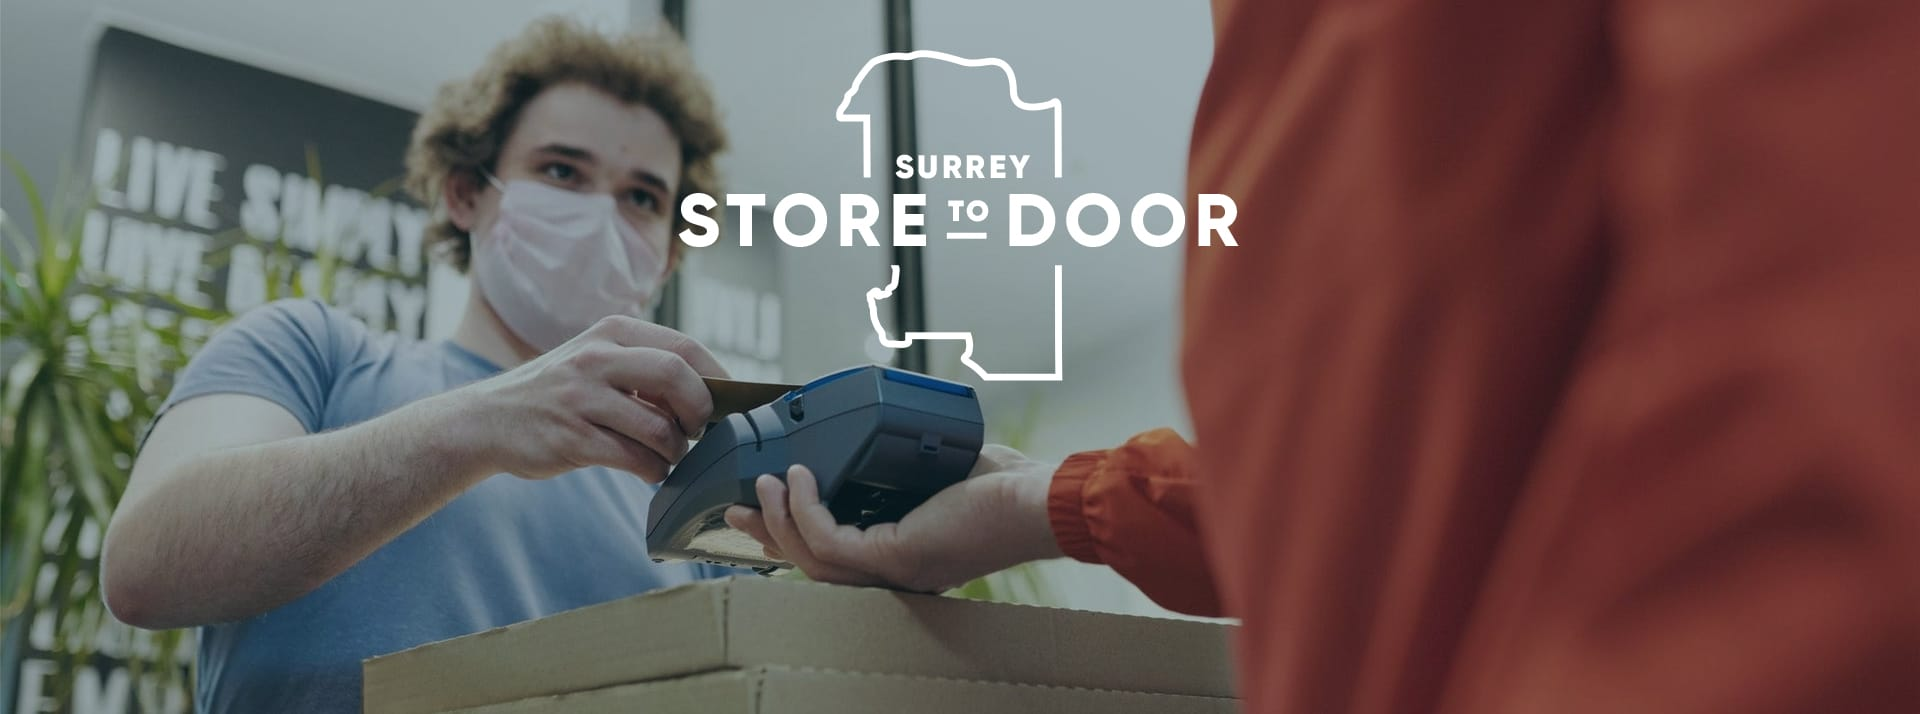 Surrey Store to door